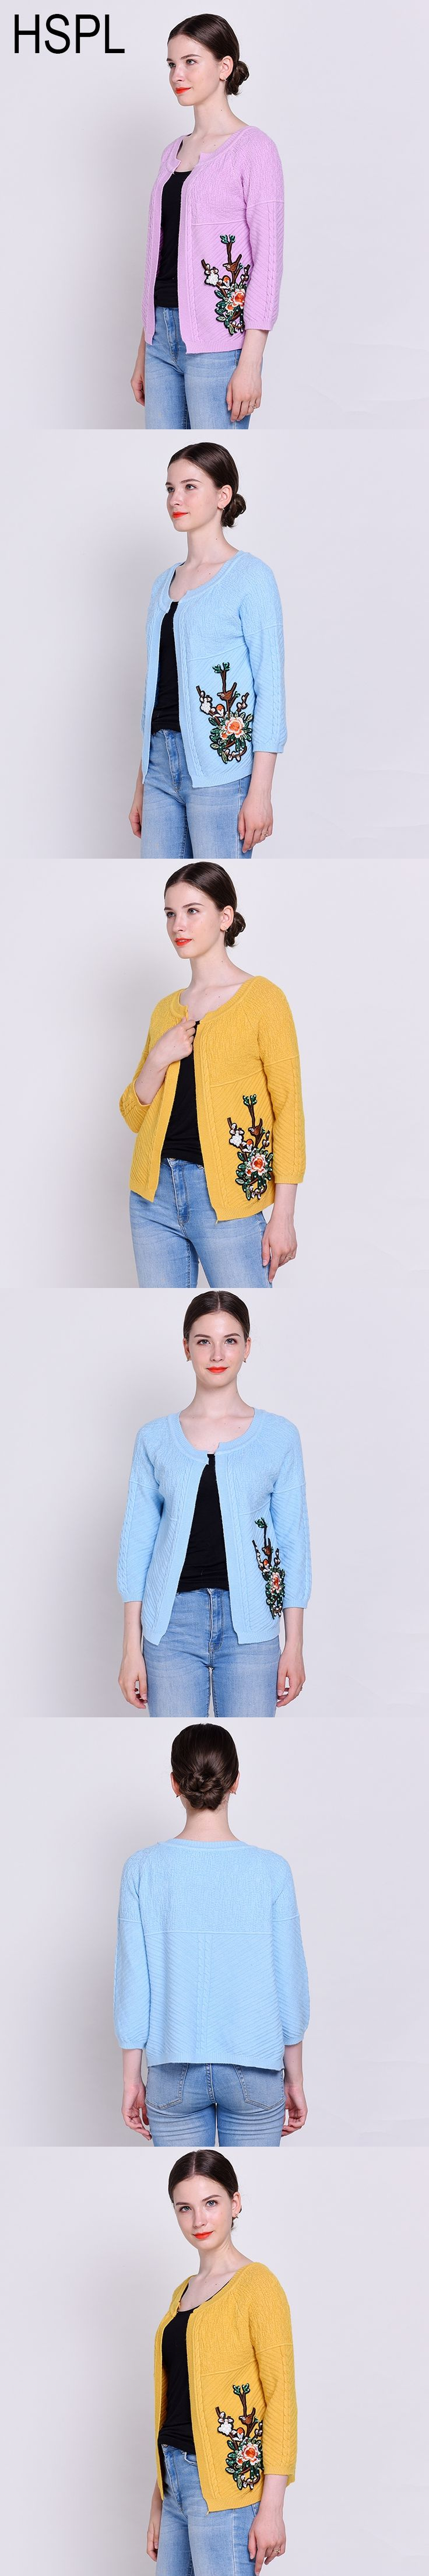 HSPL Short Embroidery Cardigan Sweater Women Knited Open Stitch Yellow Jumpers Knitwear Tops For 2017 Autumn Ladies Jacket